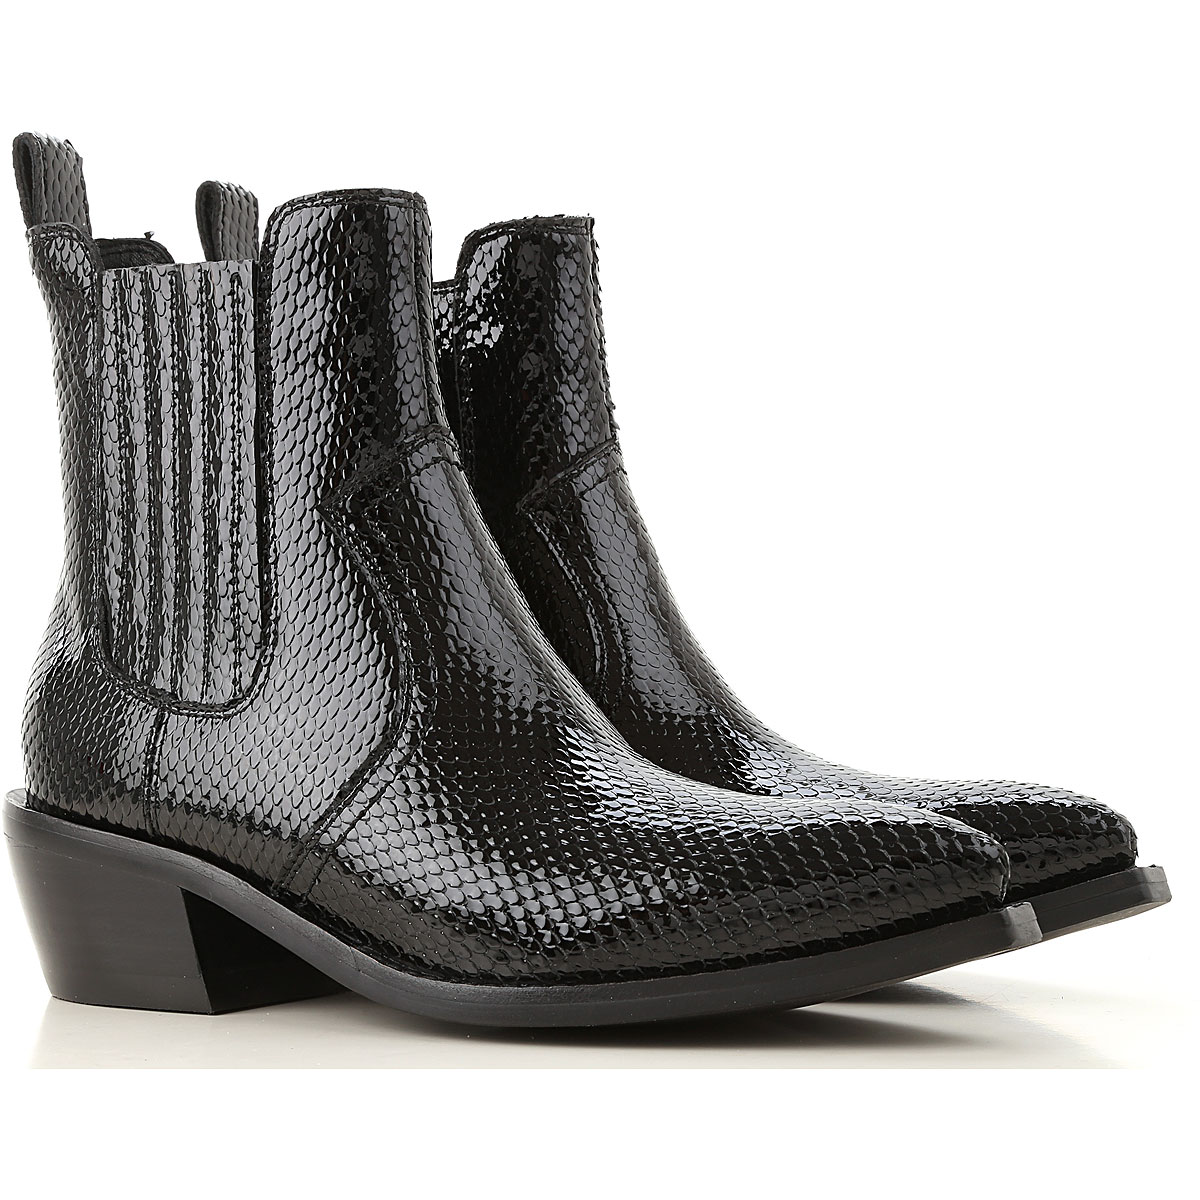 Jeffrey Campbell Boots for Women, Booties On Sale, Black, Patent Leather, 2019, 6 7 9